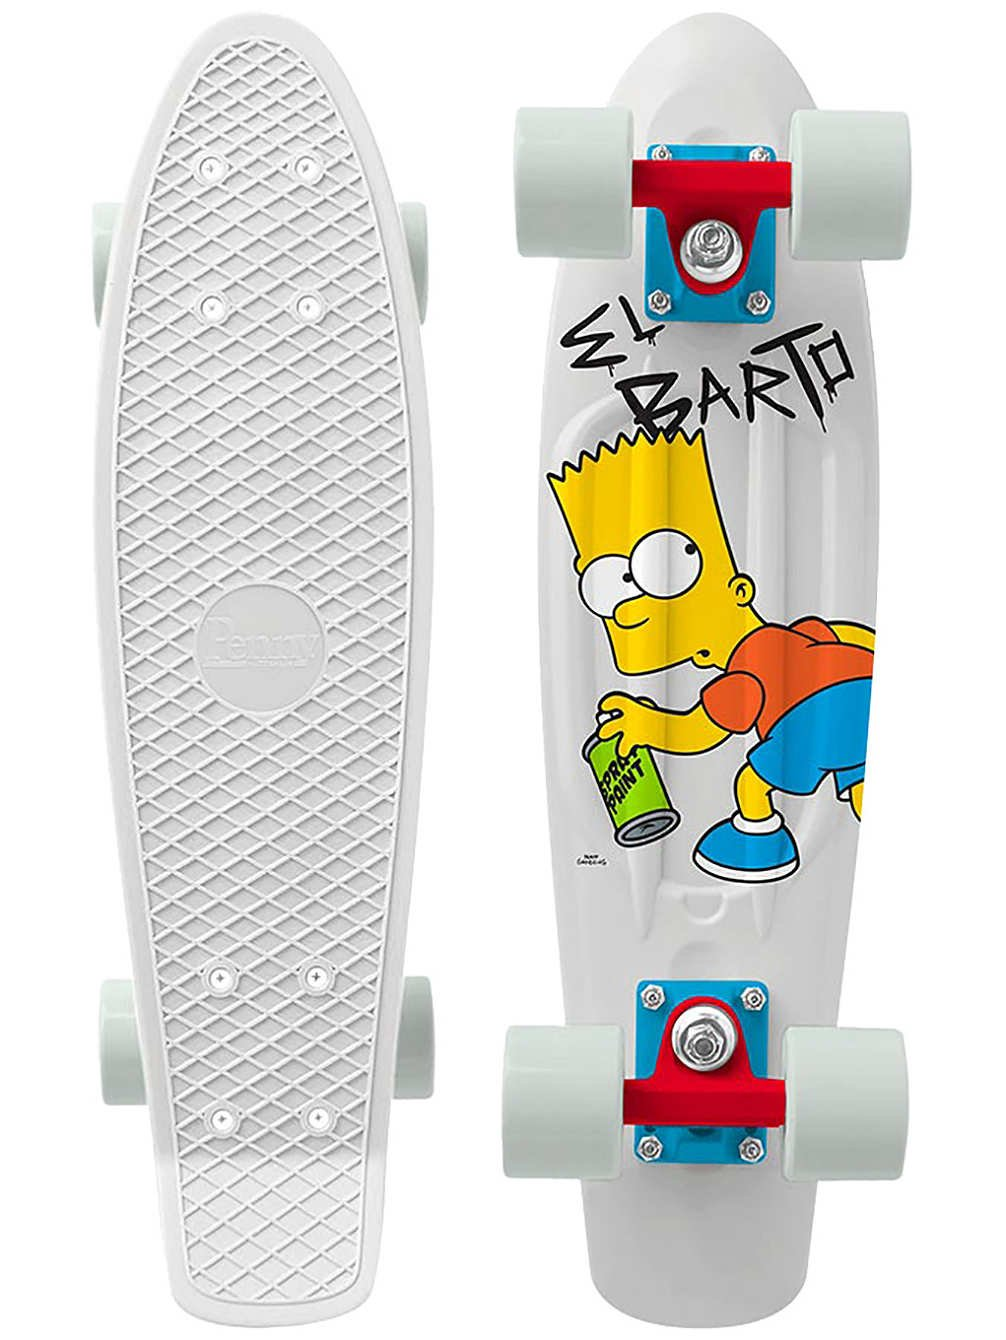 Penny - Simpsons Nickel 22 - El Barto - penny boards